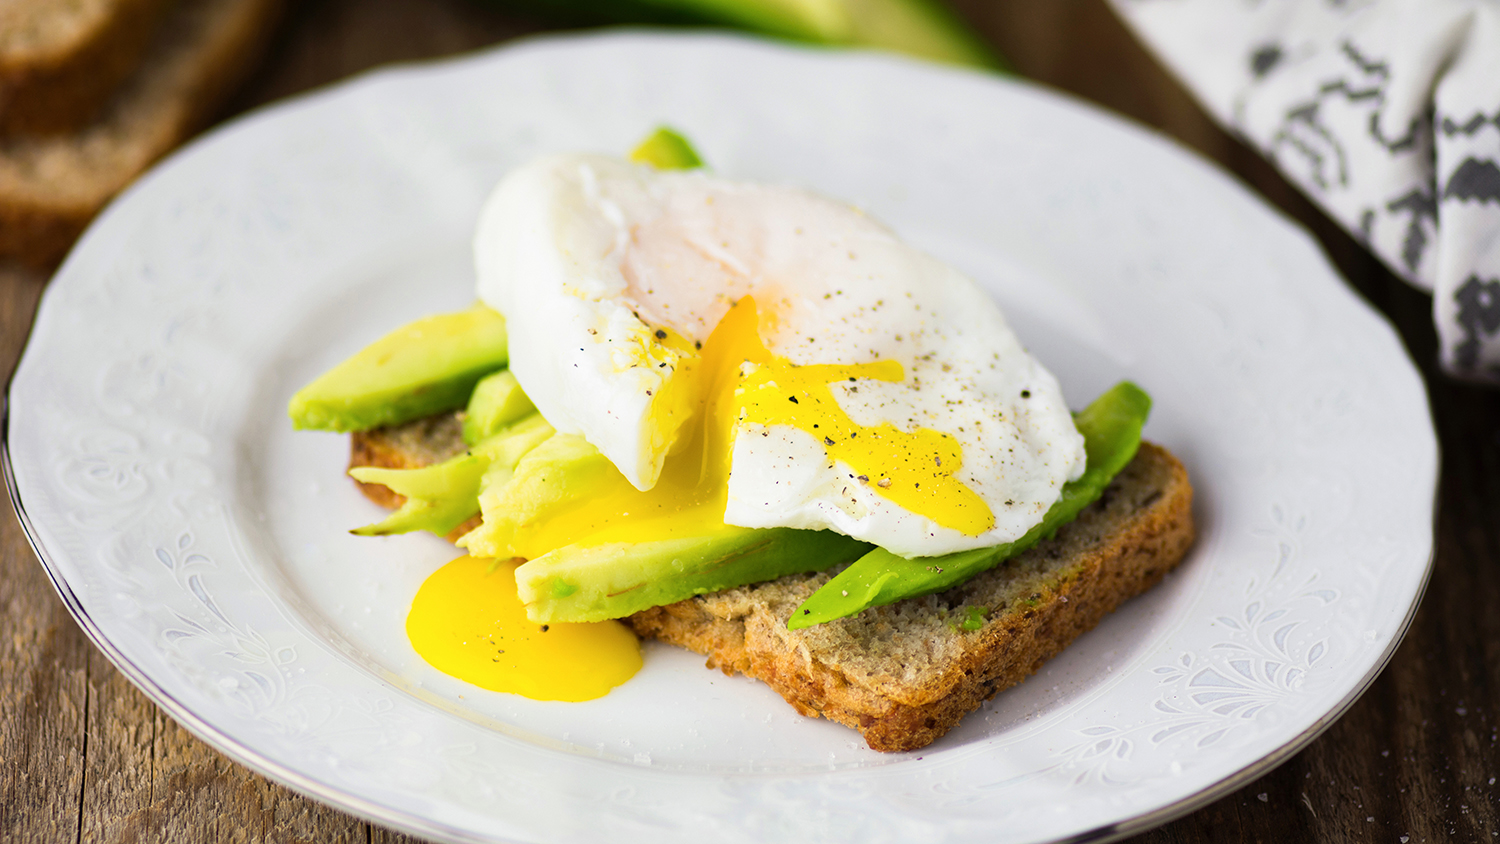 Poached Egg and Avocado Toast